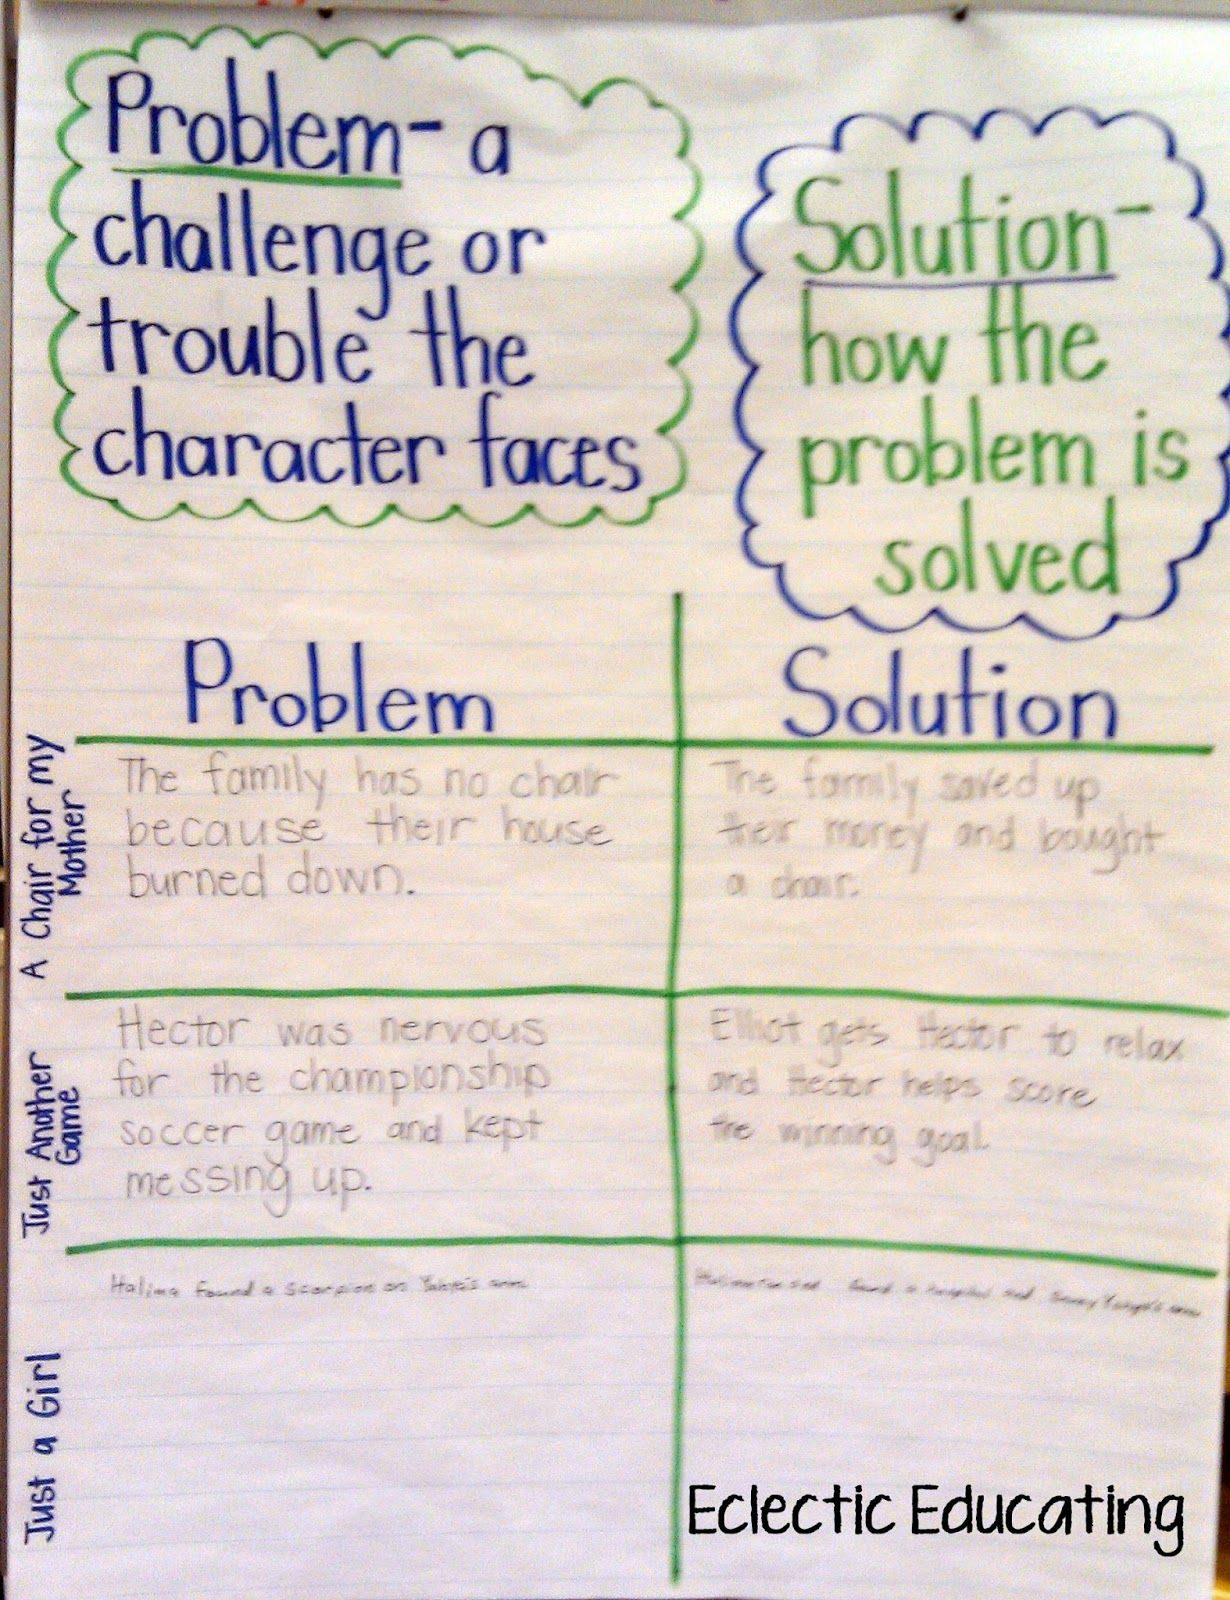 Eclectic Educating Problem And Solution Lesson